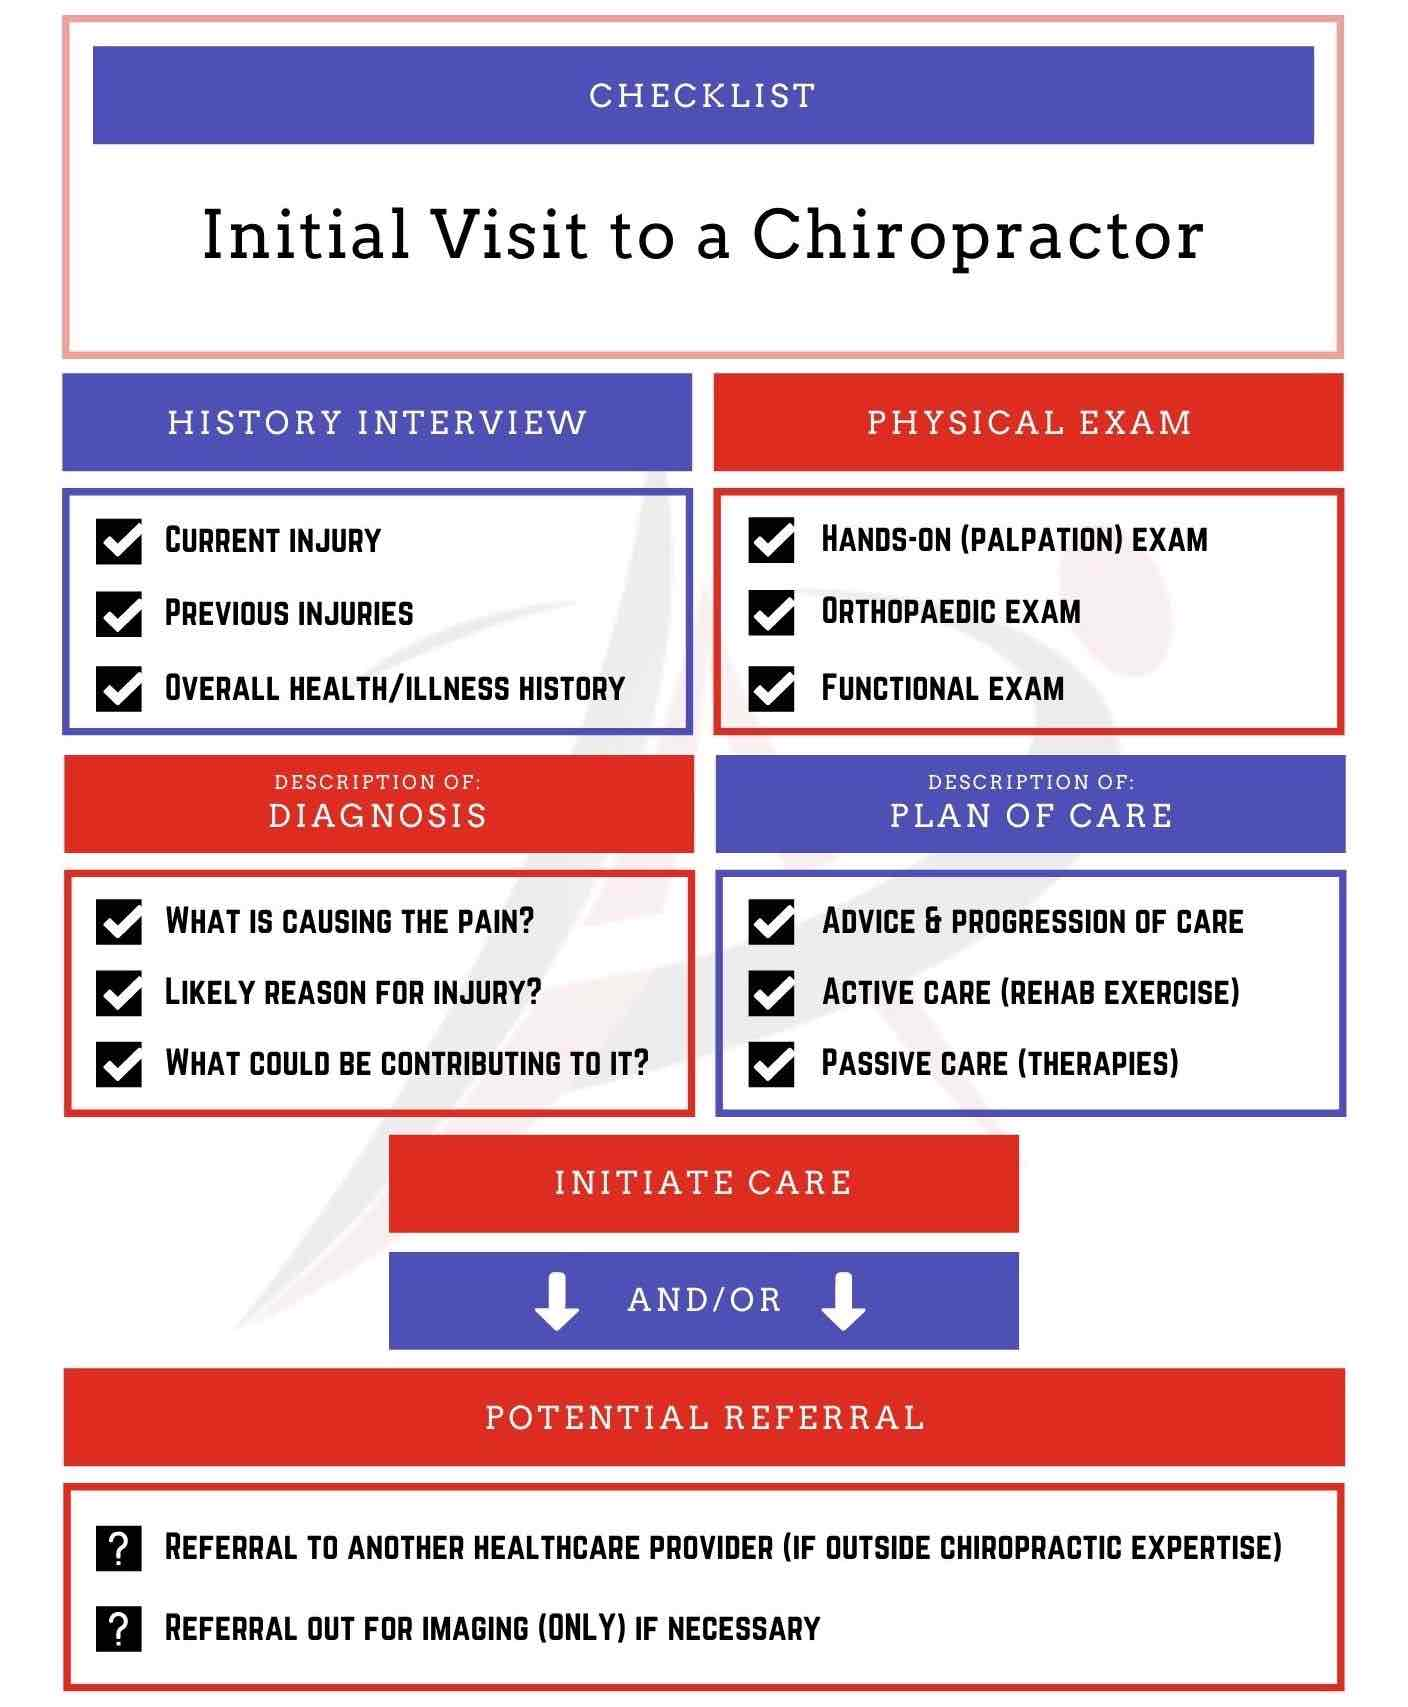 What to expect from a visit to a chiropractor checklist image